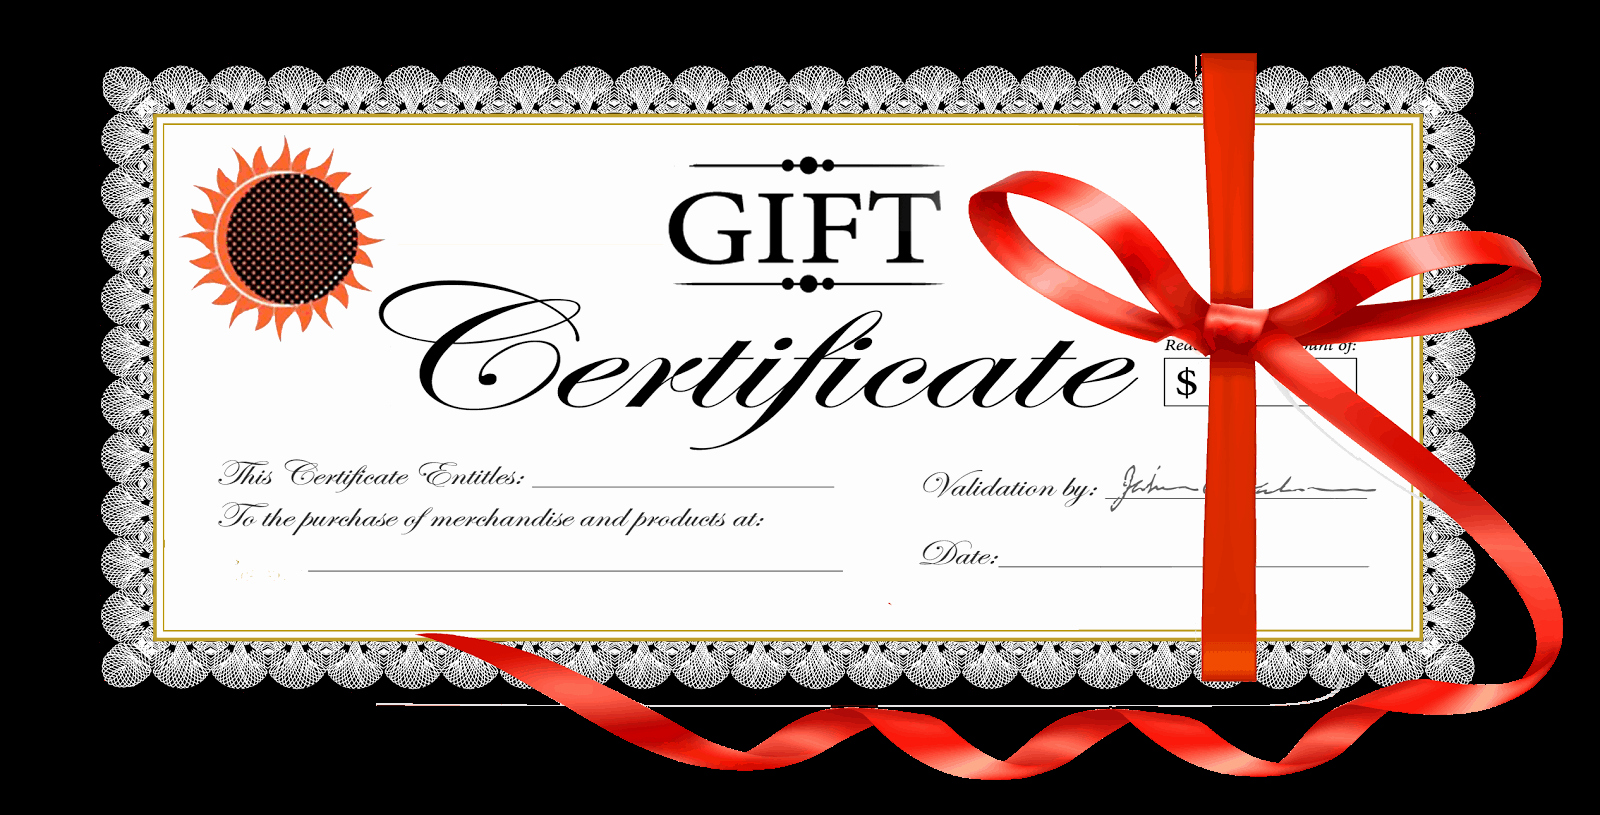 Template for Gift Certificate Fresh 18 Gift Certificate Templates Excel Pdf formats